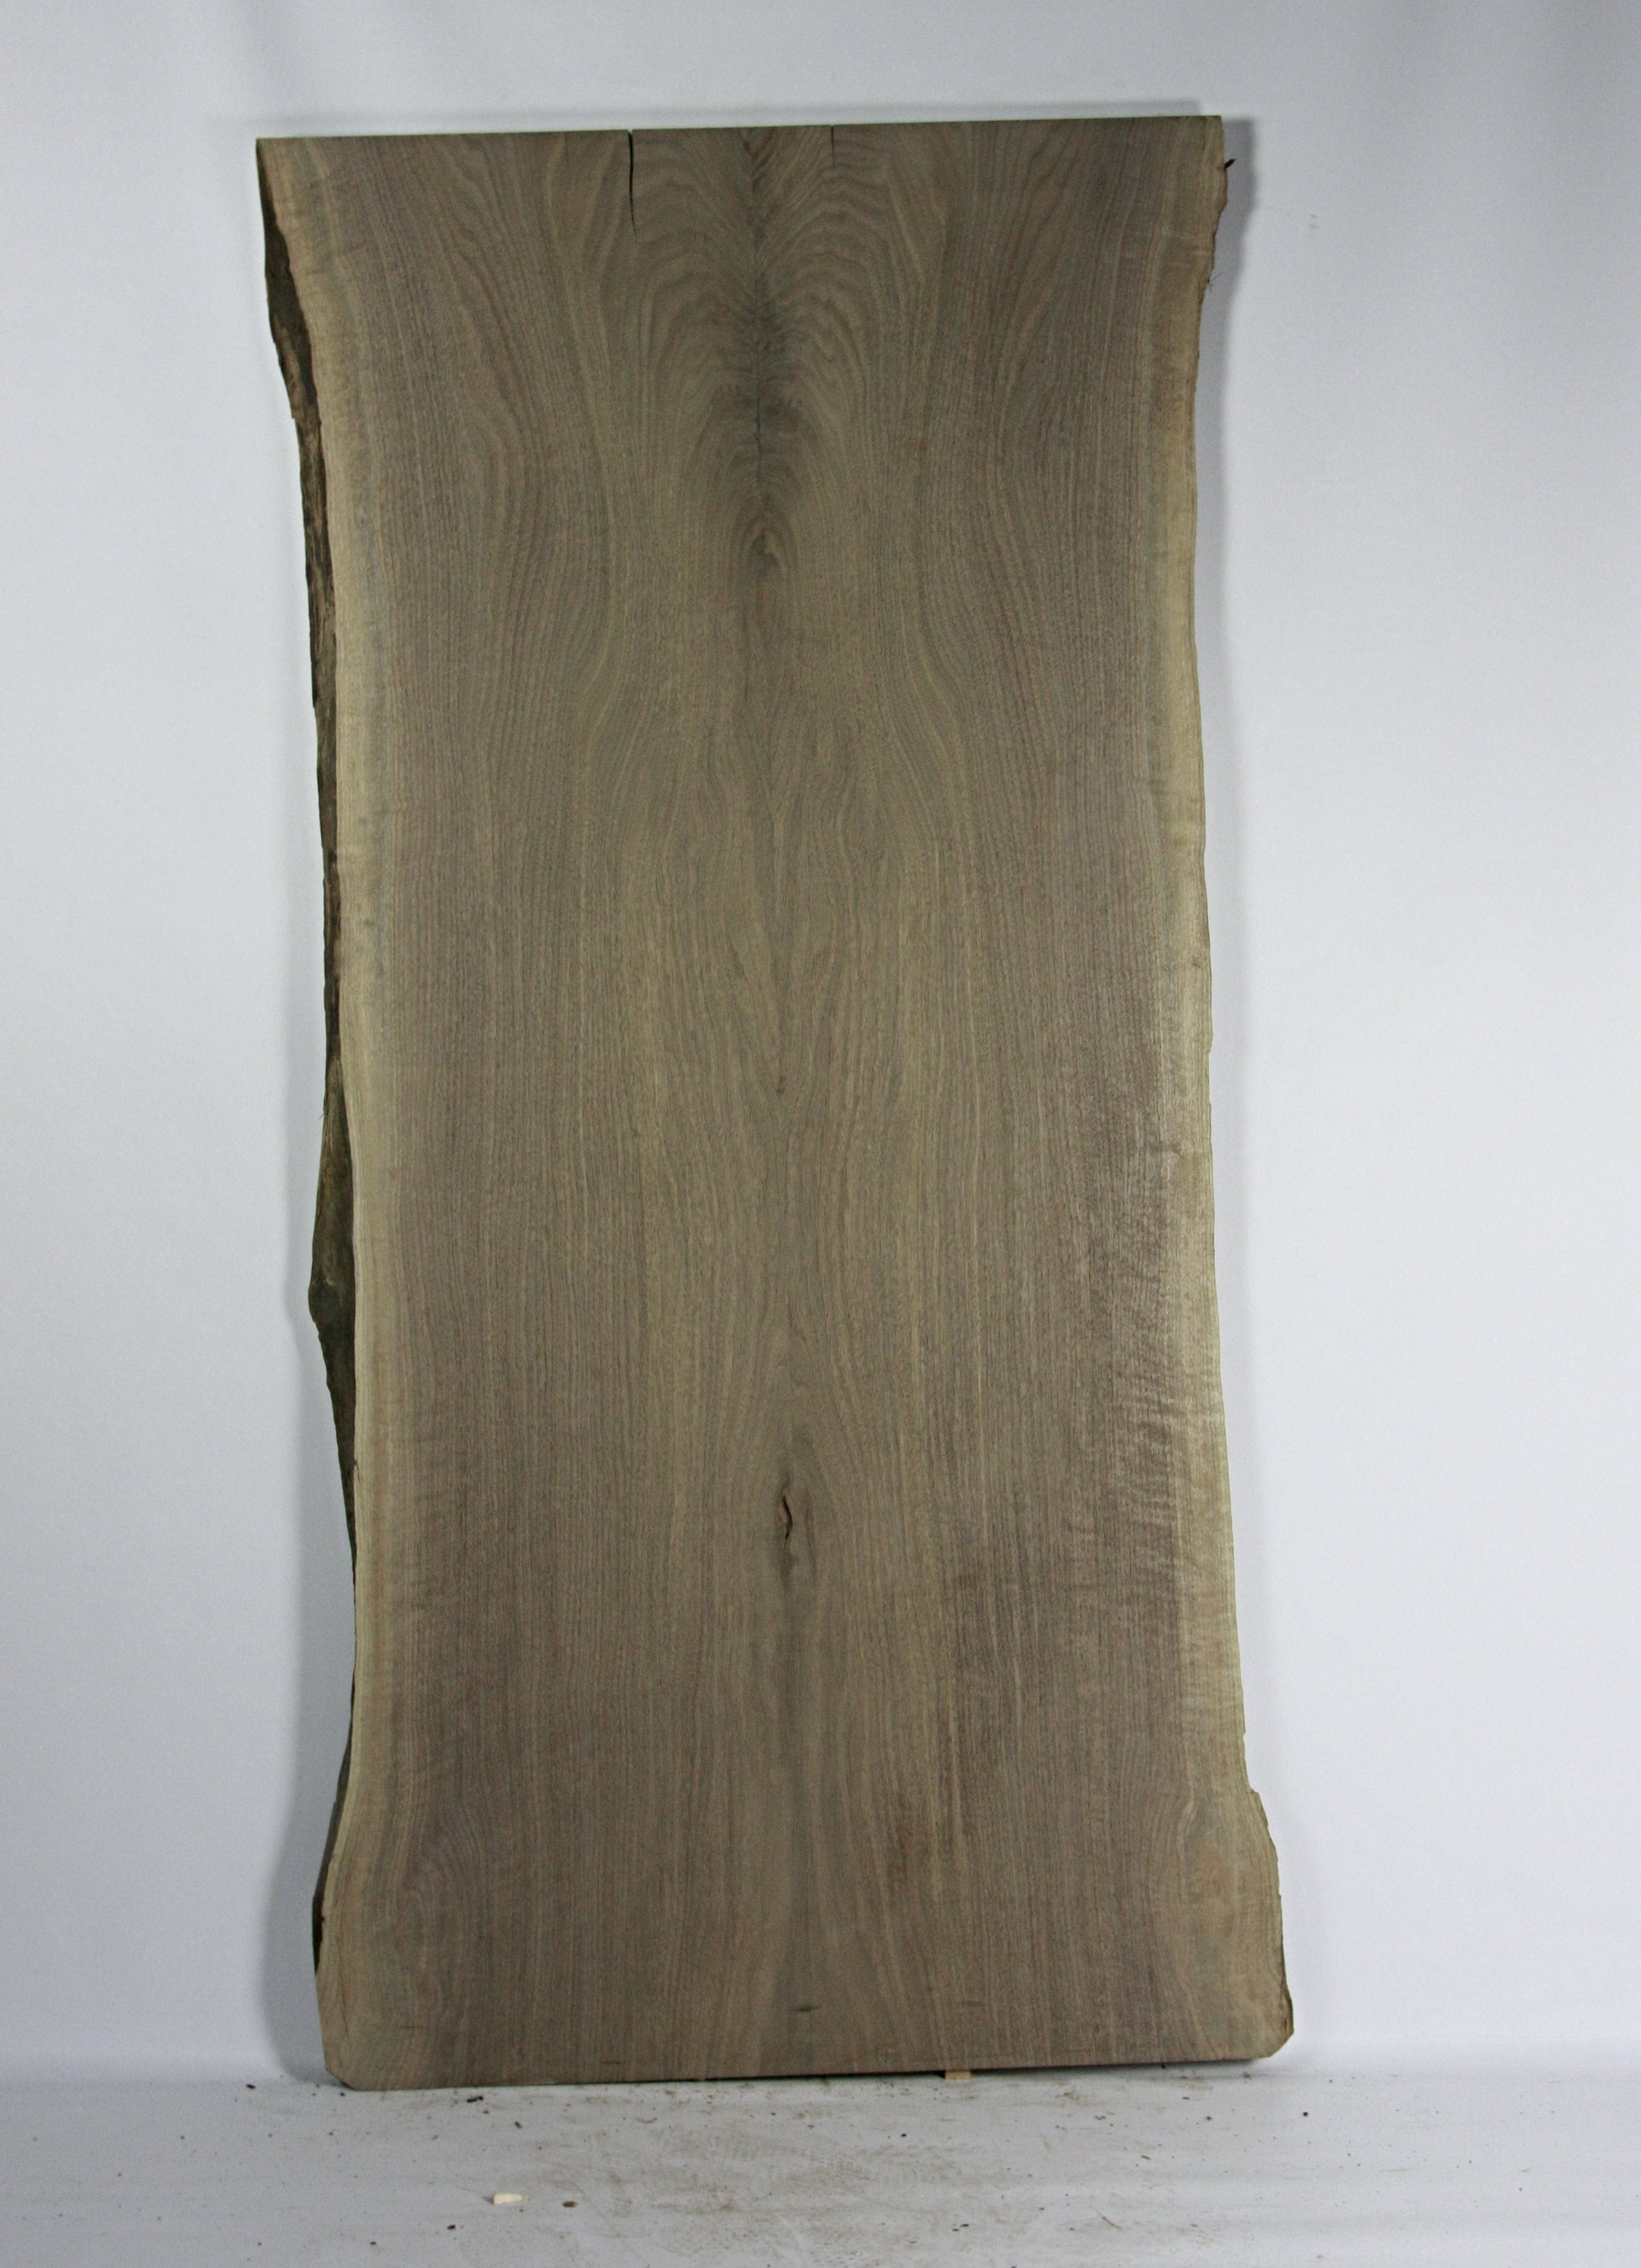 Live Edge Hardwood Slab: Black Walnut